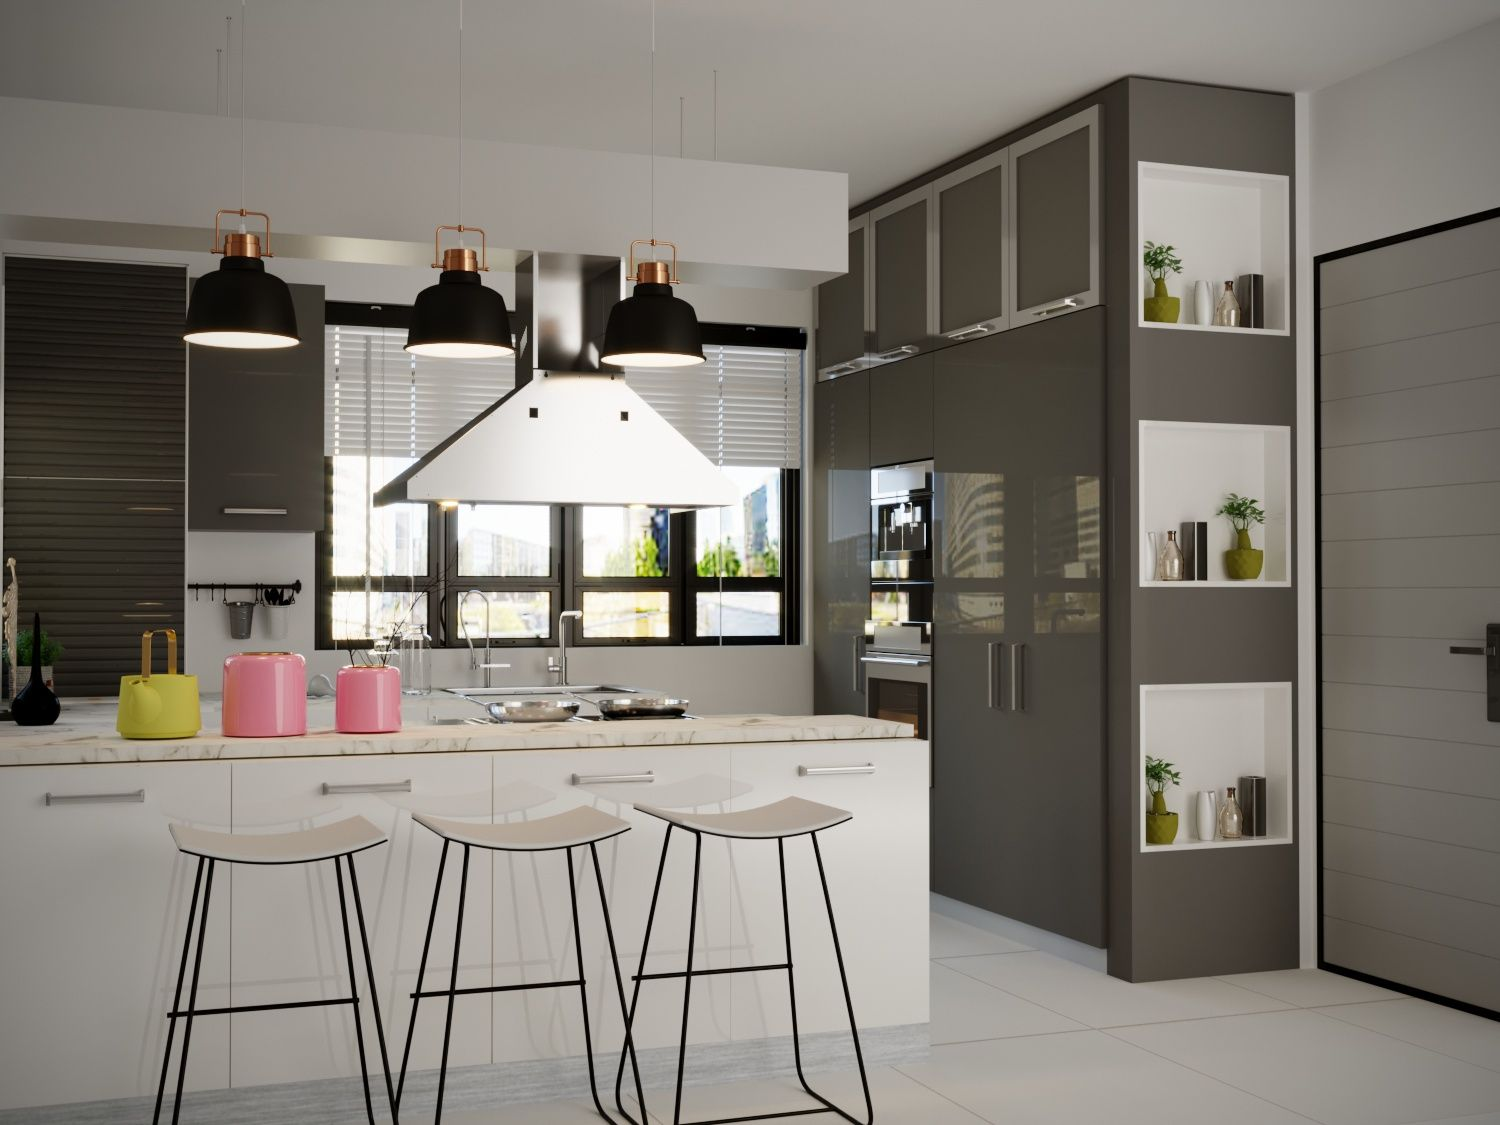 infurgo interiors help to us step by step process to calculate cost